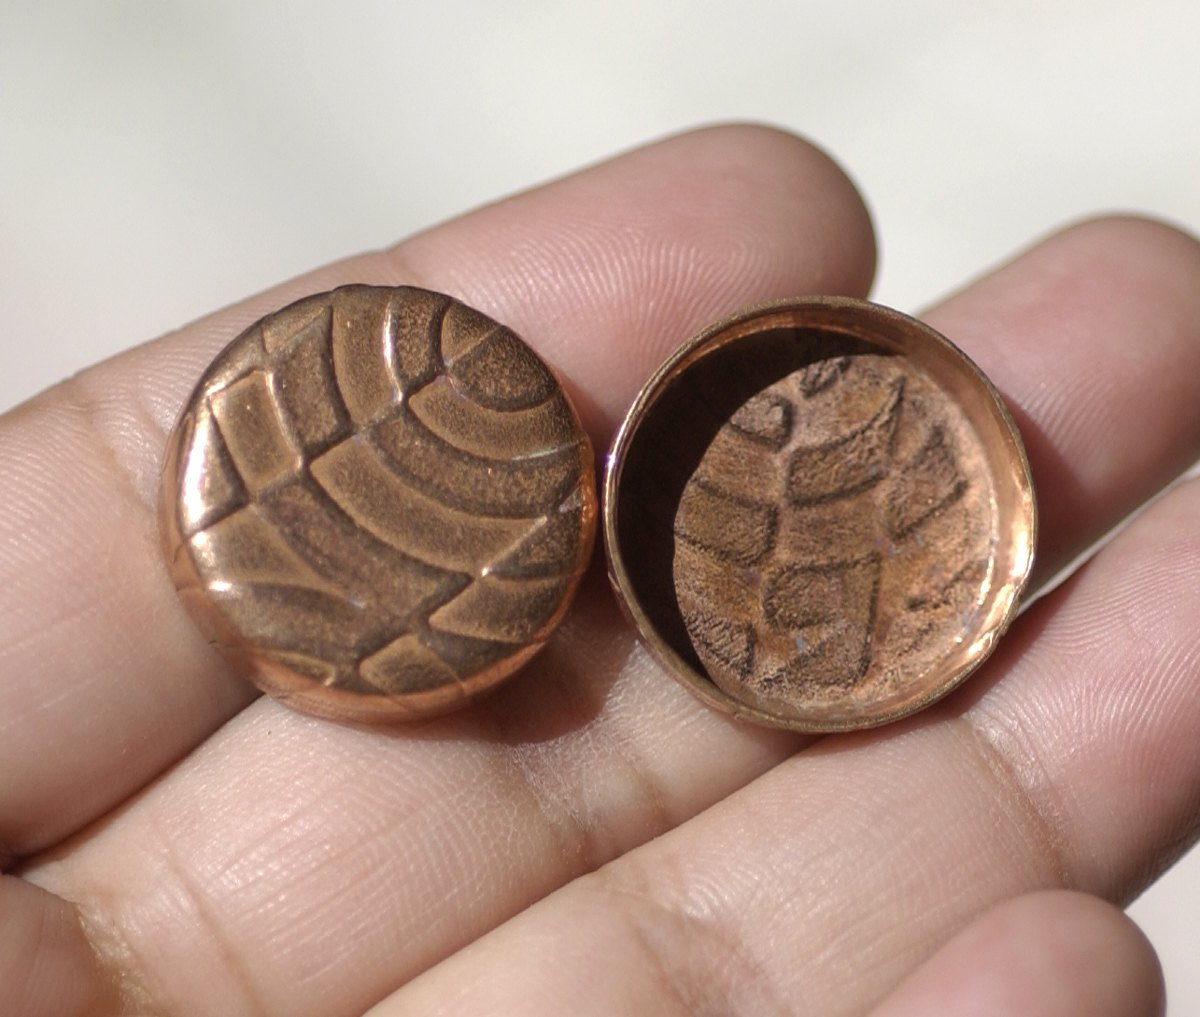 Textured Copper Bezel Cups 26g 21mm Round Blanks Cutout for Enameling Metalworking Charms Jewelry Making